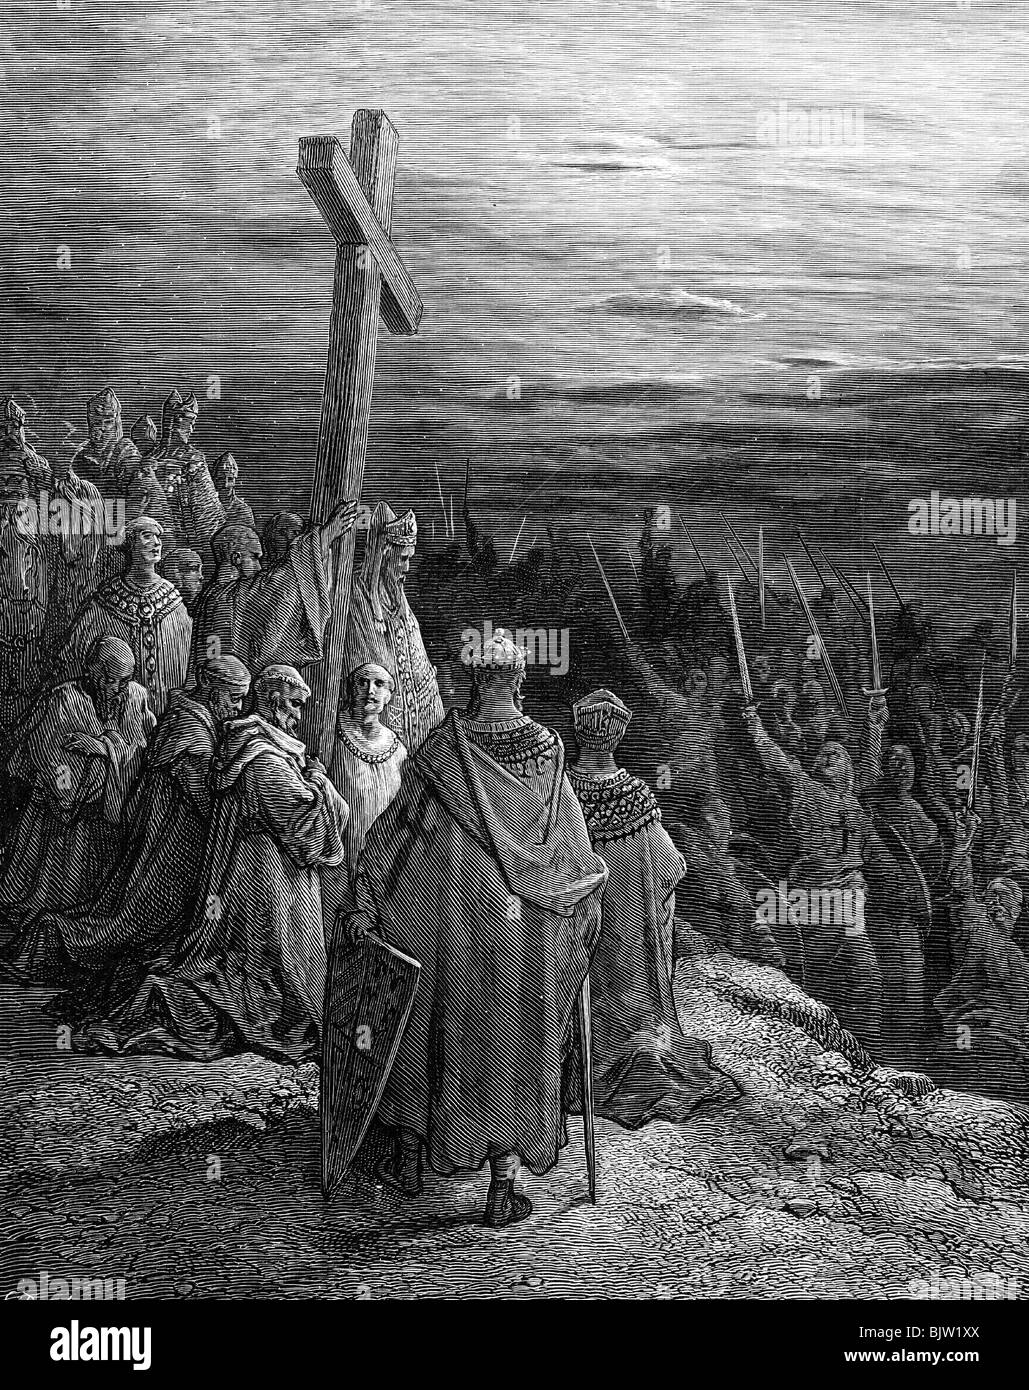 Middle Ages, crusades, First Crusade 1096 - 1099, the cross inspires the army, wood engraving by H. Pisan after Stock Photo